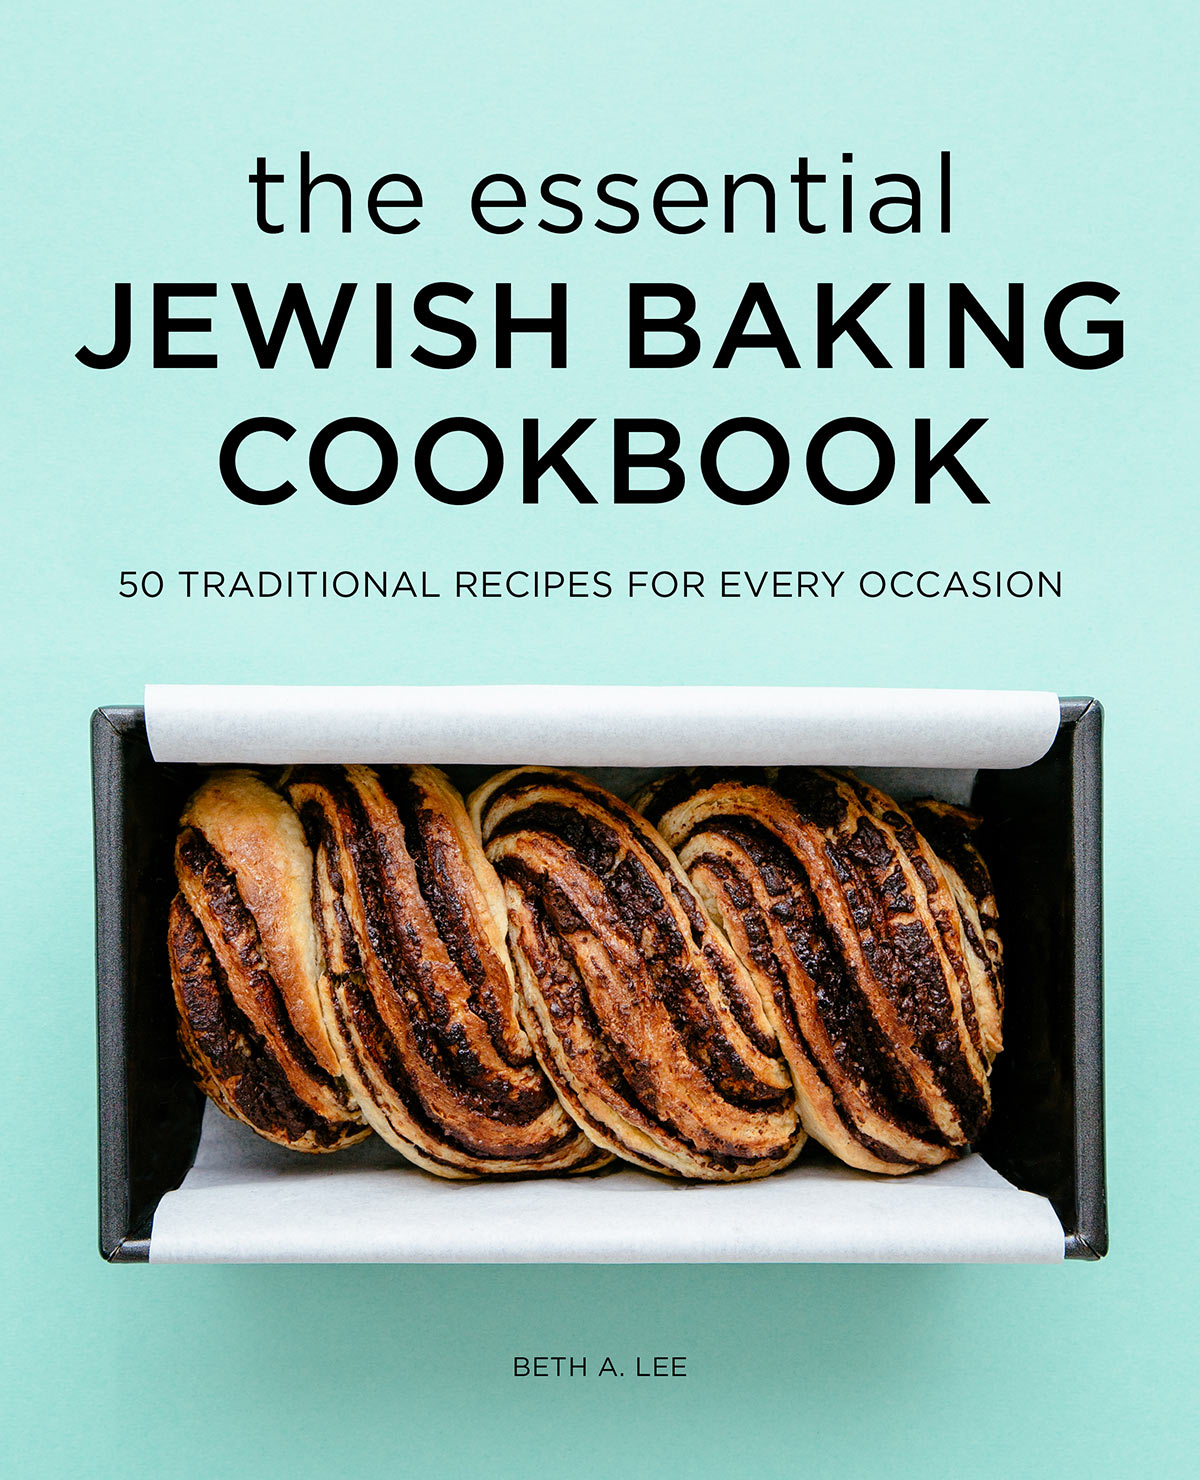 Photo of the cover of the essential Jewish baking cookbook by Beth Lee.